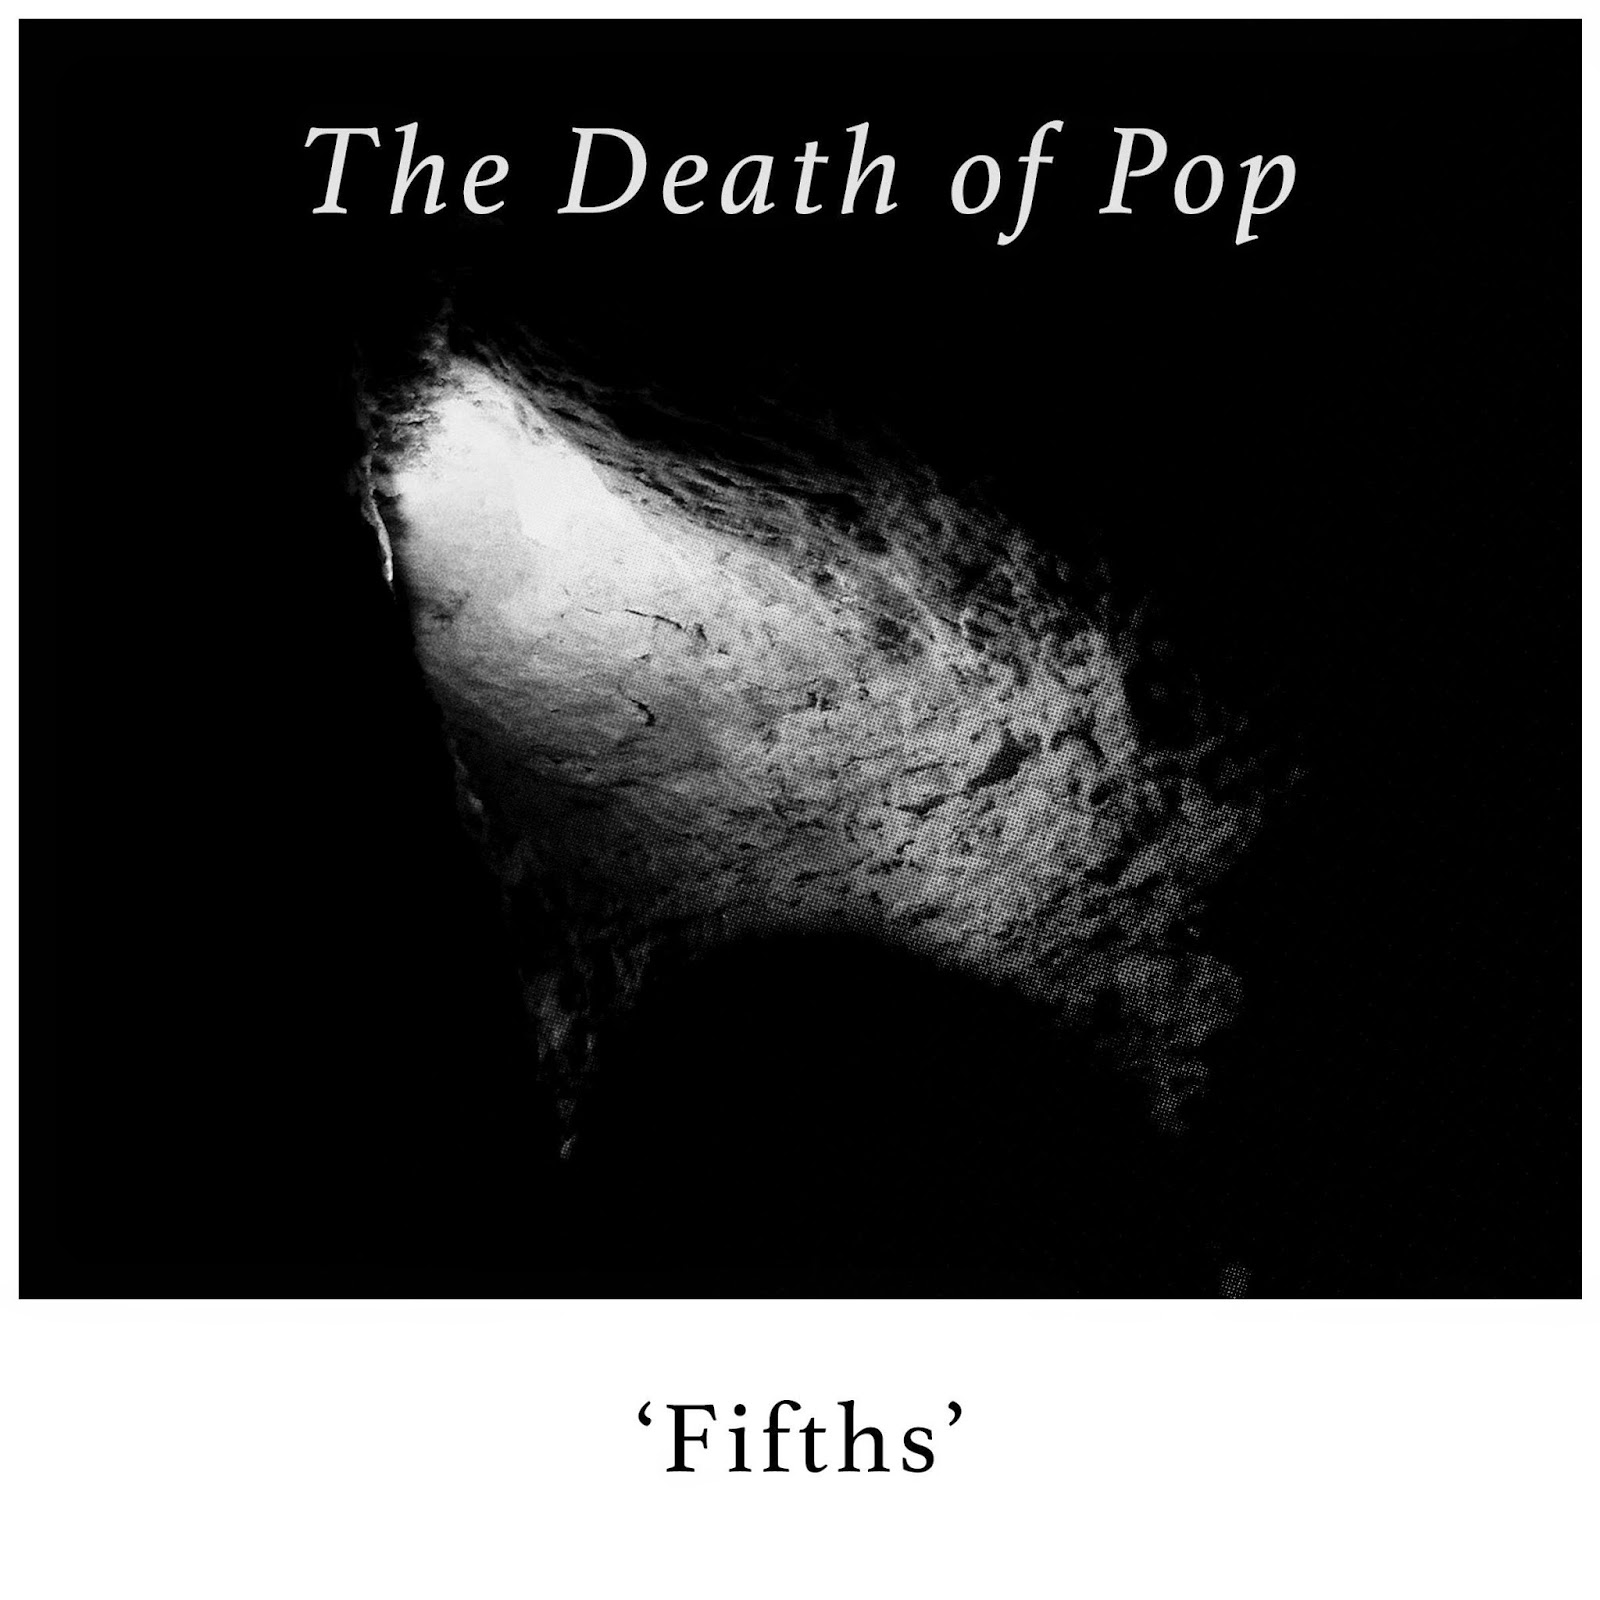 death-pop-mirage-fifths